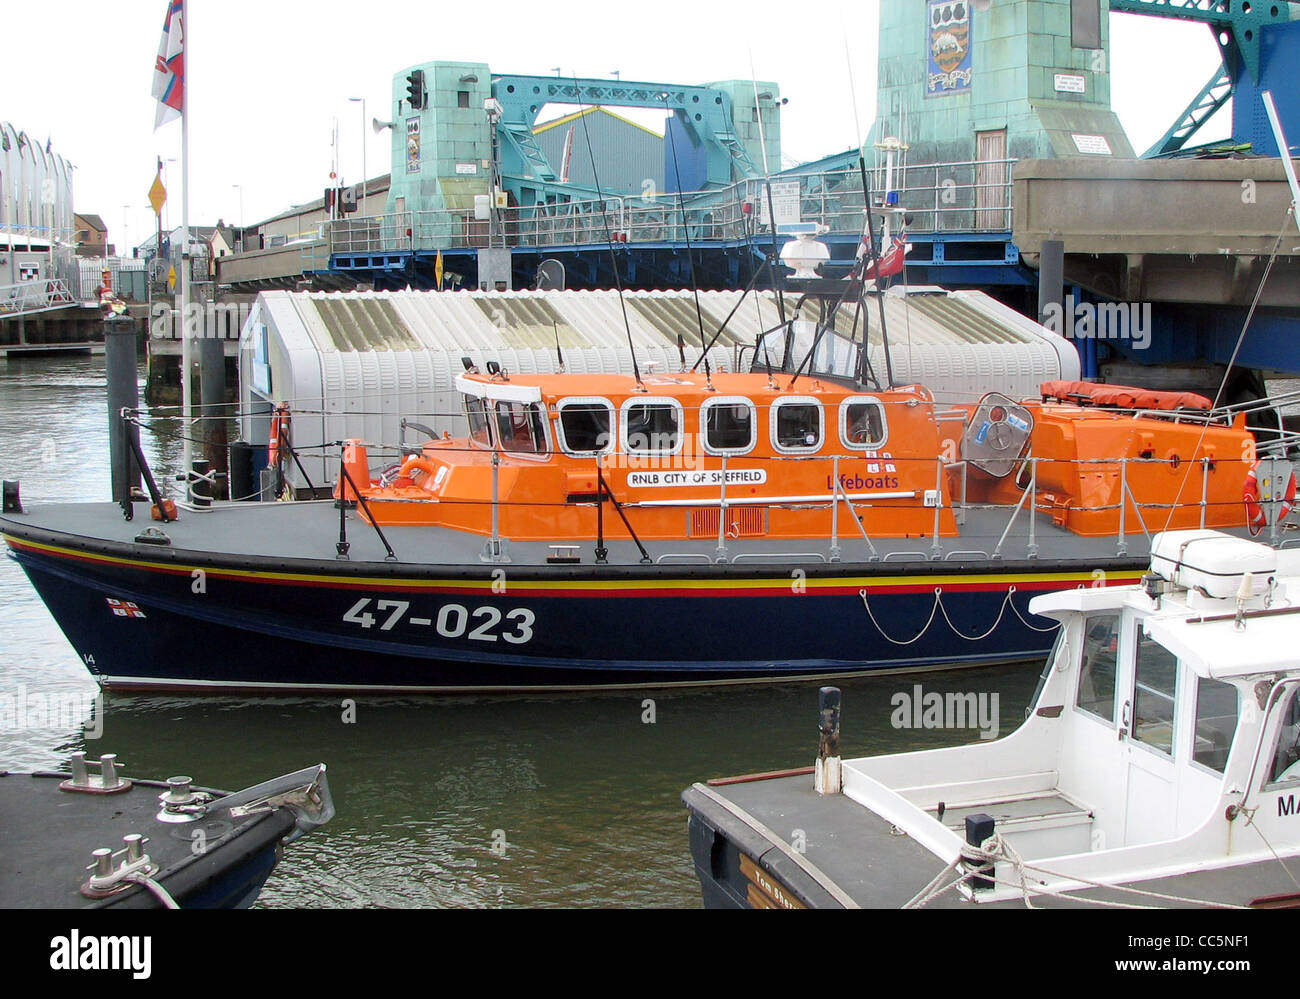 """Tyne class lifeboat """"City of Sheffield"""" in Poole Harbour, Dorset, England. This class is being slowly replaced (2006) - Stock Image"""